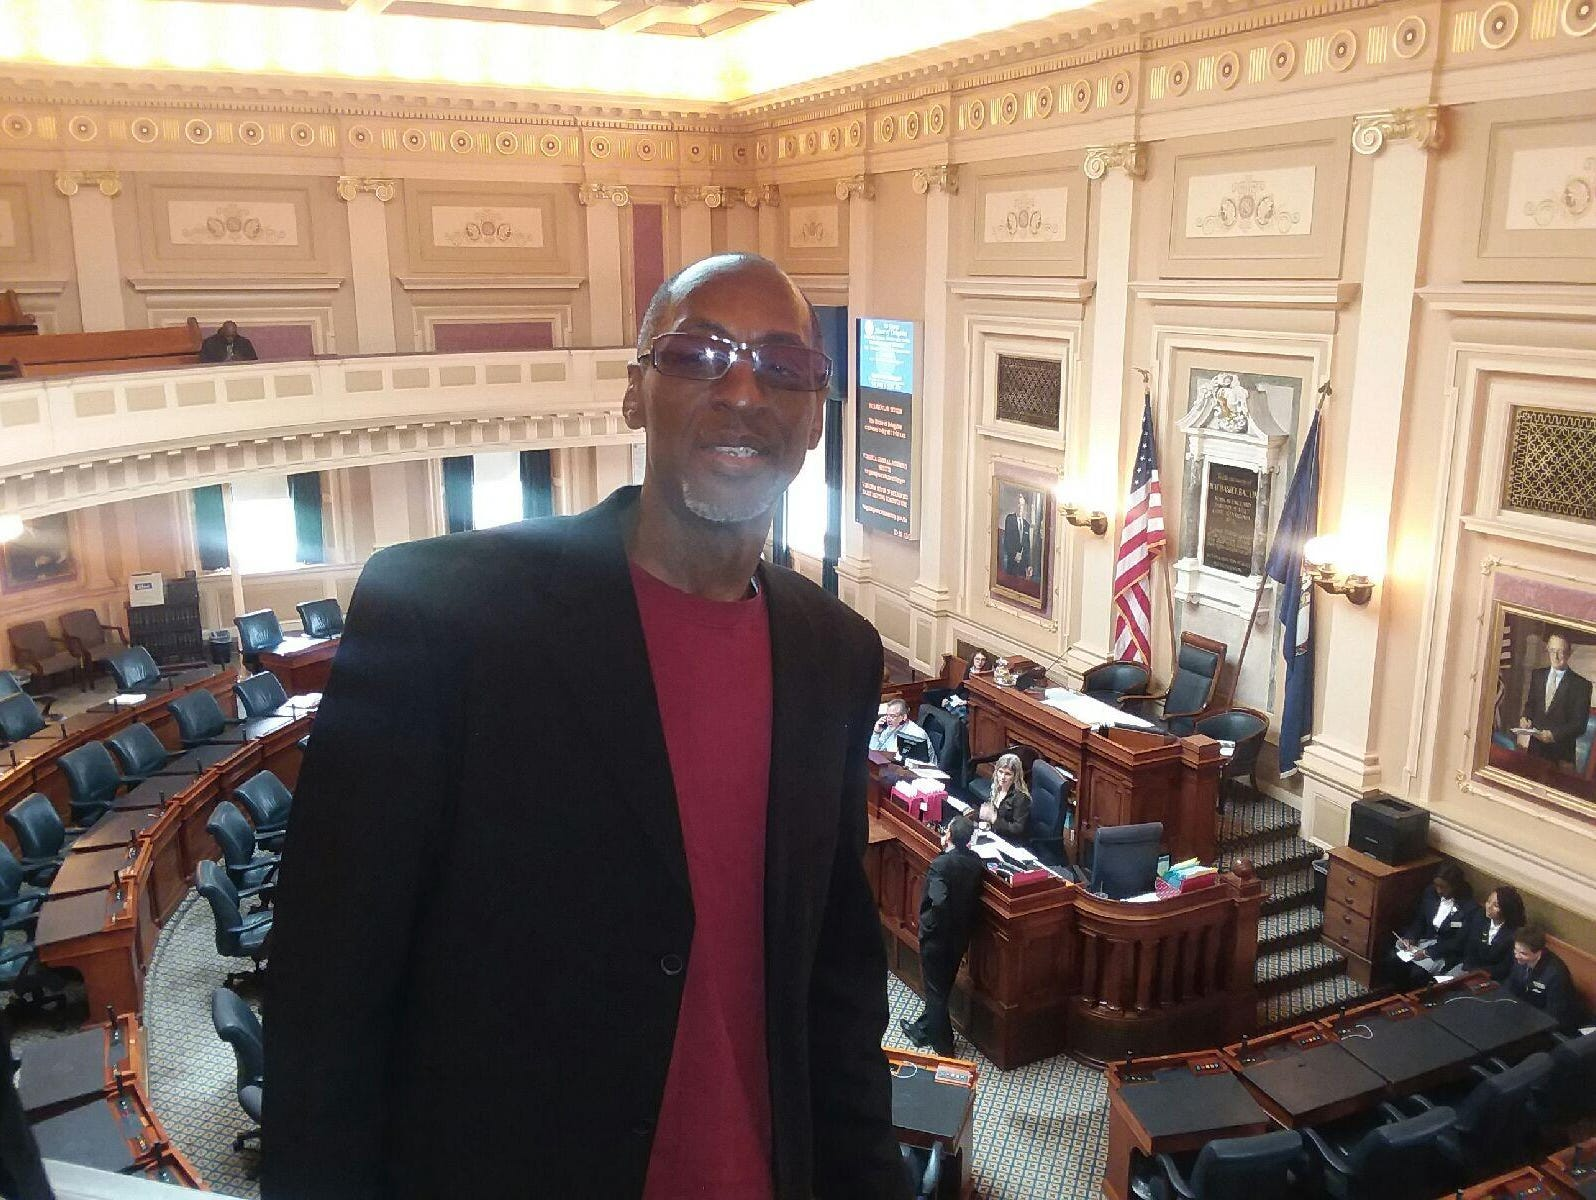 Former Tennessee and Washington Redskins quarterback Tony Robinson stands in the Virginia General Assembly on Tuesday in Richmond, Va. Robinson and Anthony Sagnella were present to hear the passing of a resolution that honored the contributions of the replacement players during the 1987 season in which Washington won the Super Bowl.